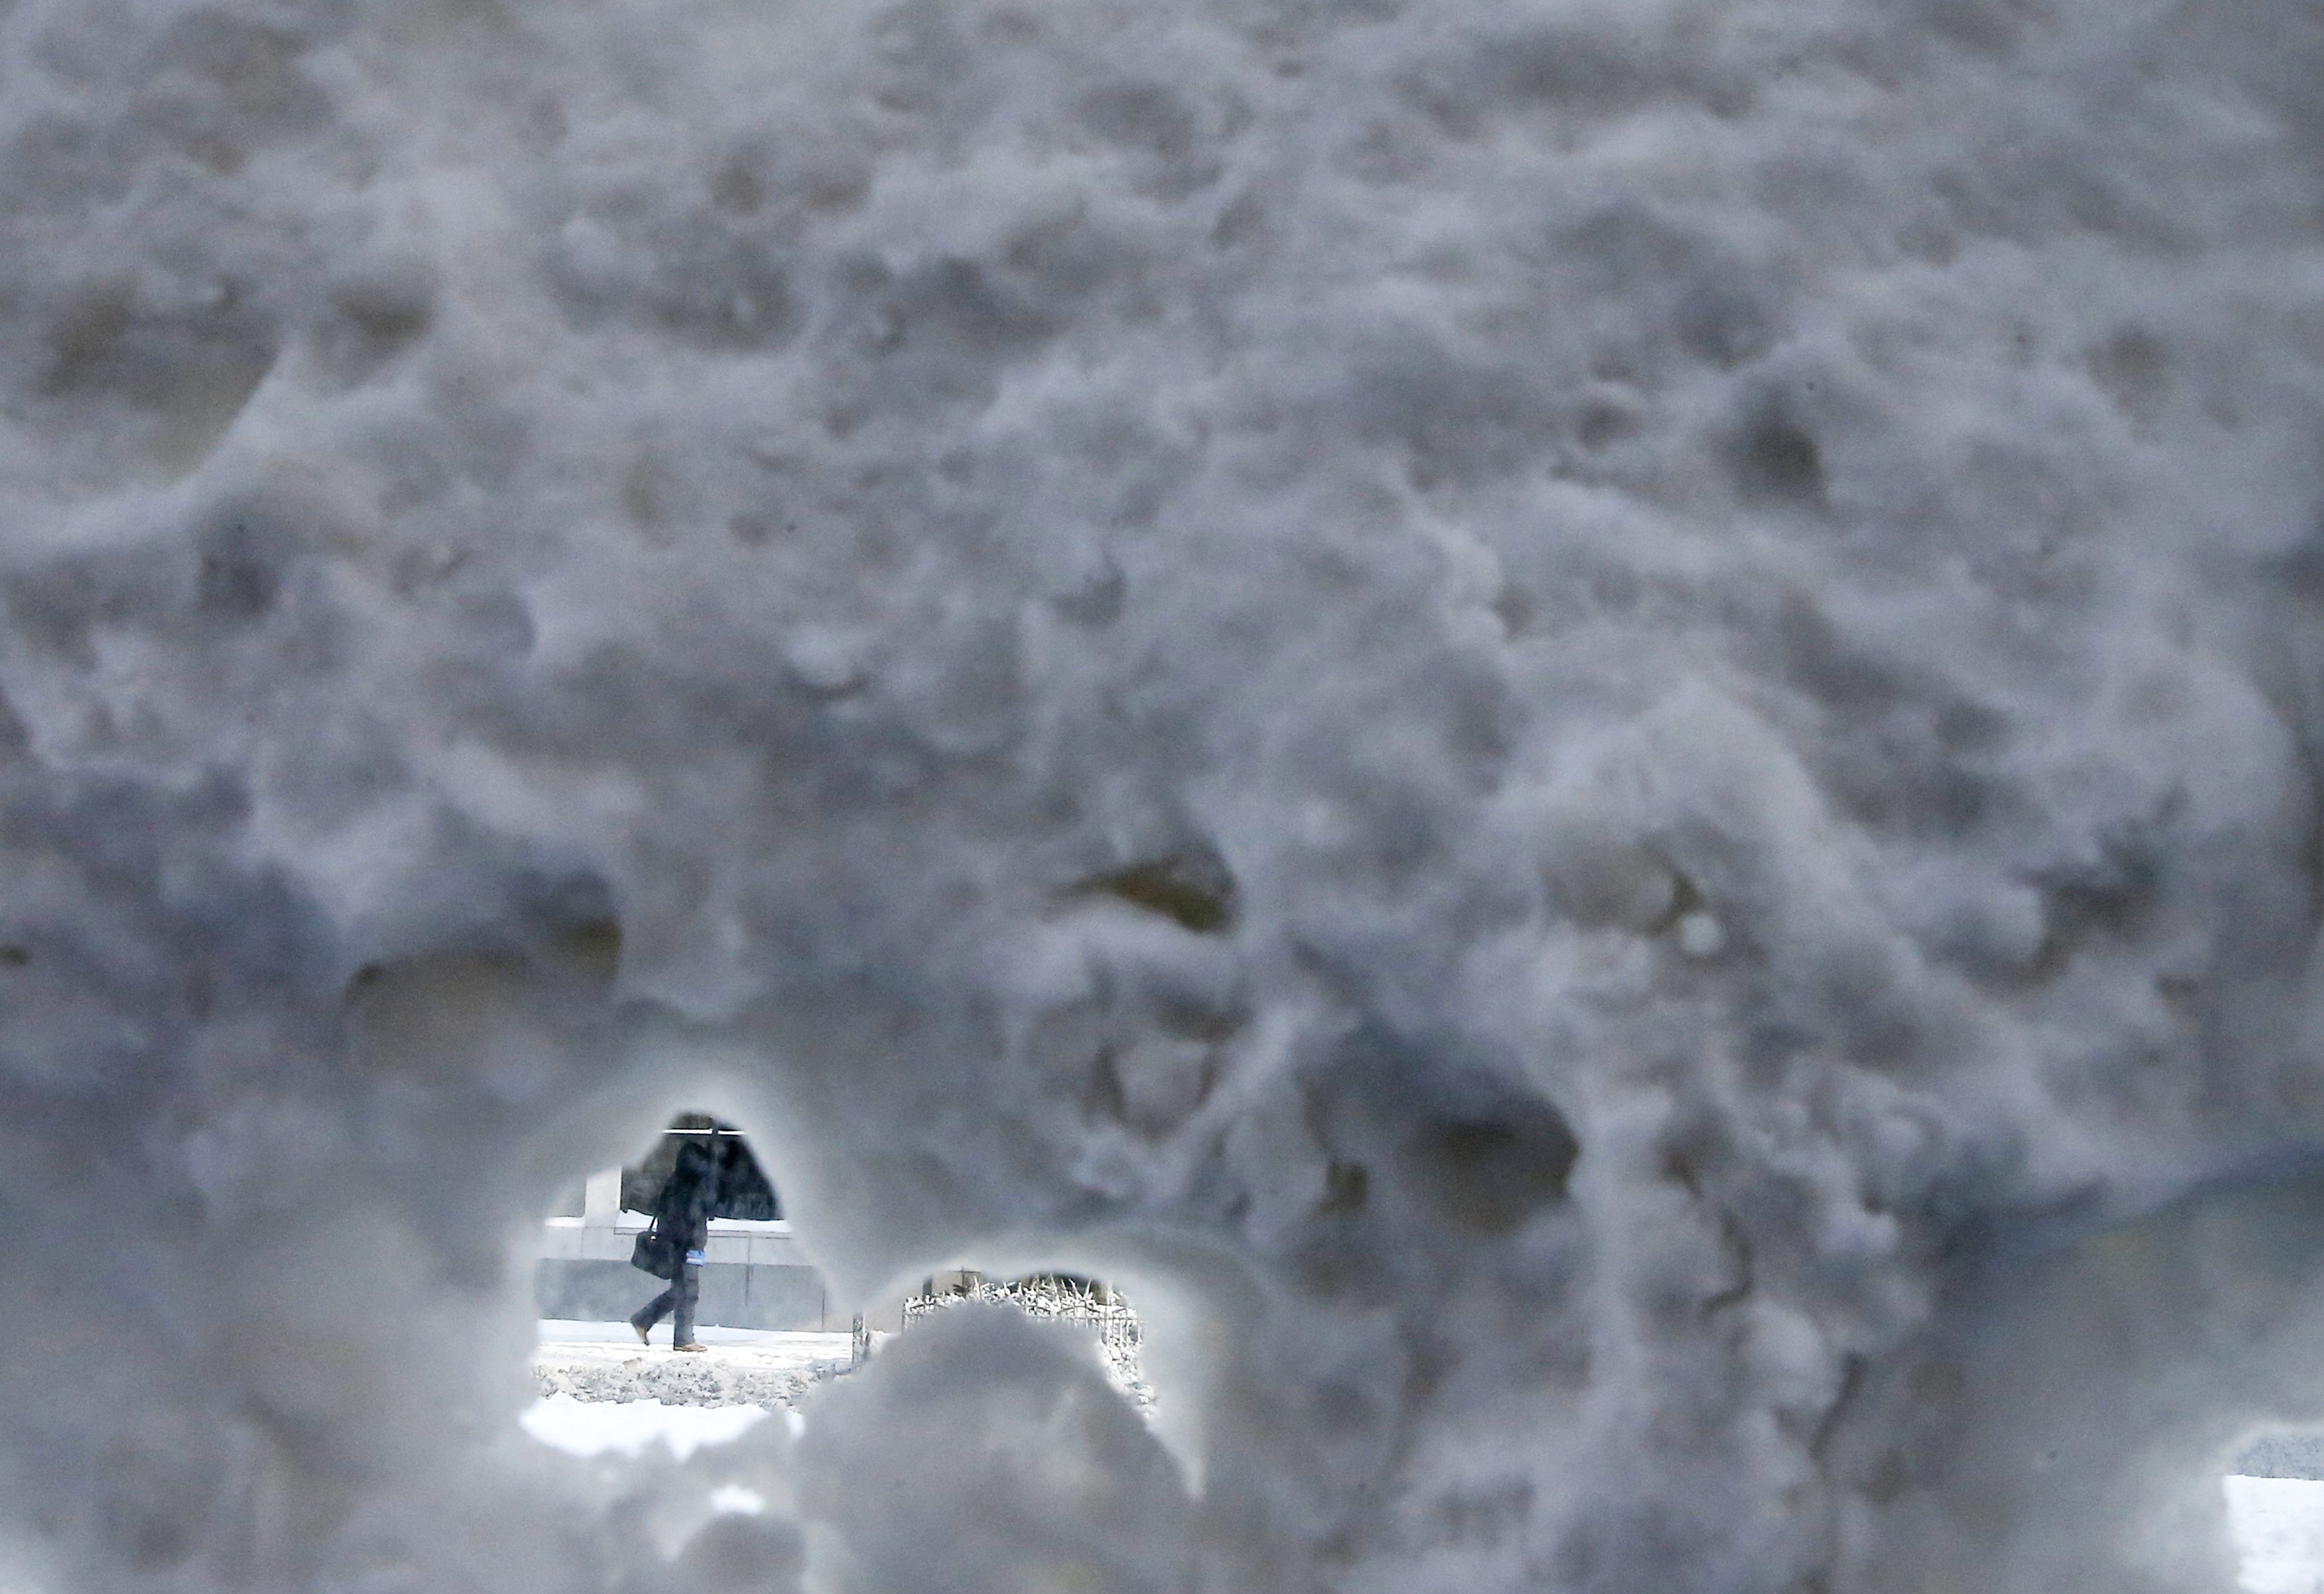 Person walking in high snow